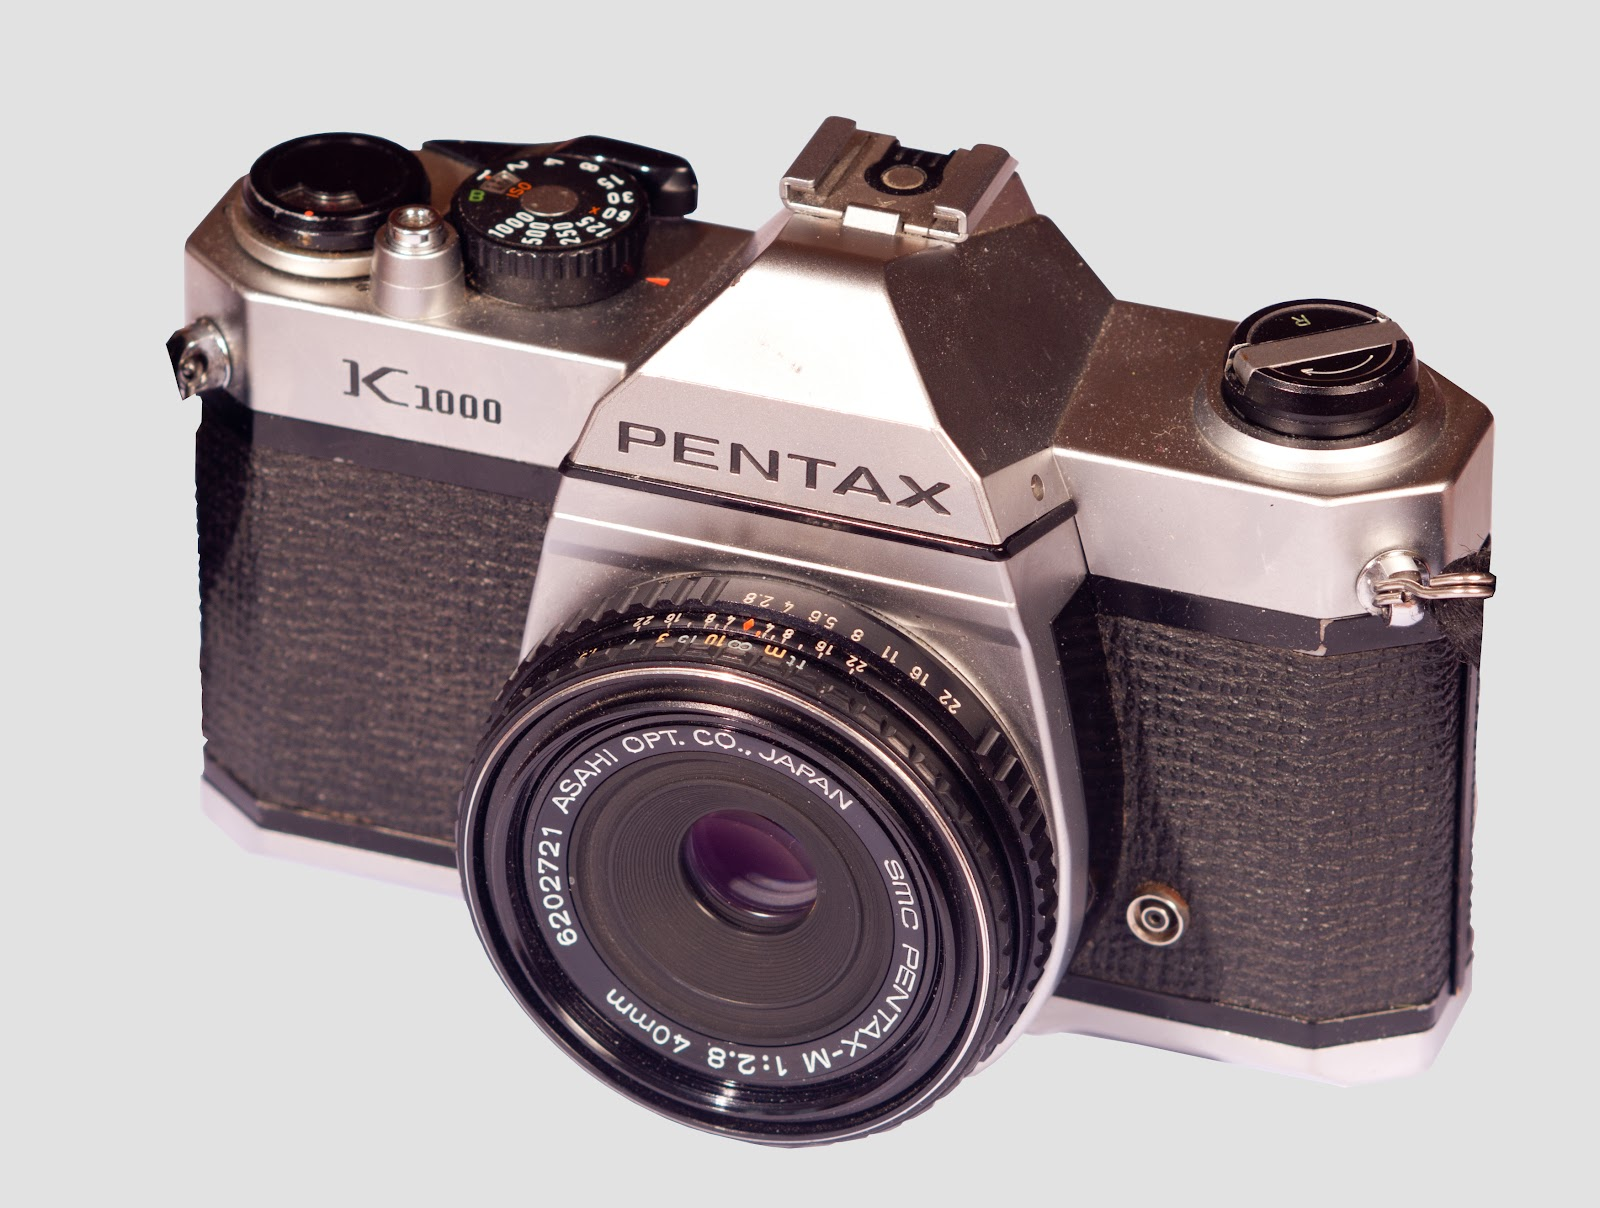 A photo of the Pentax K1000 35mm camera